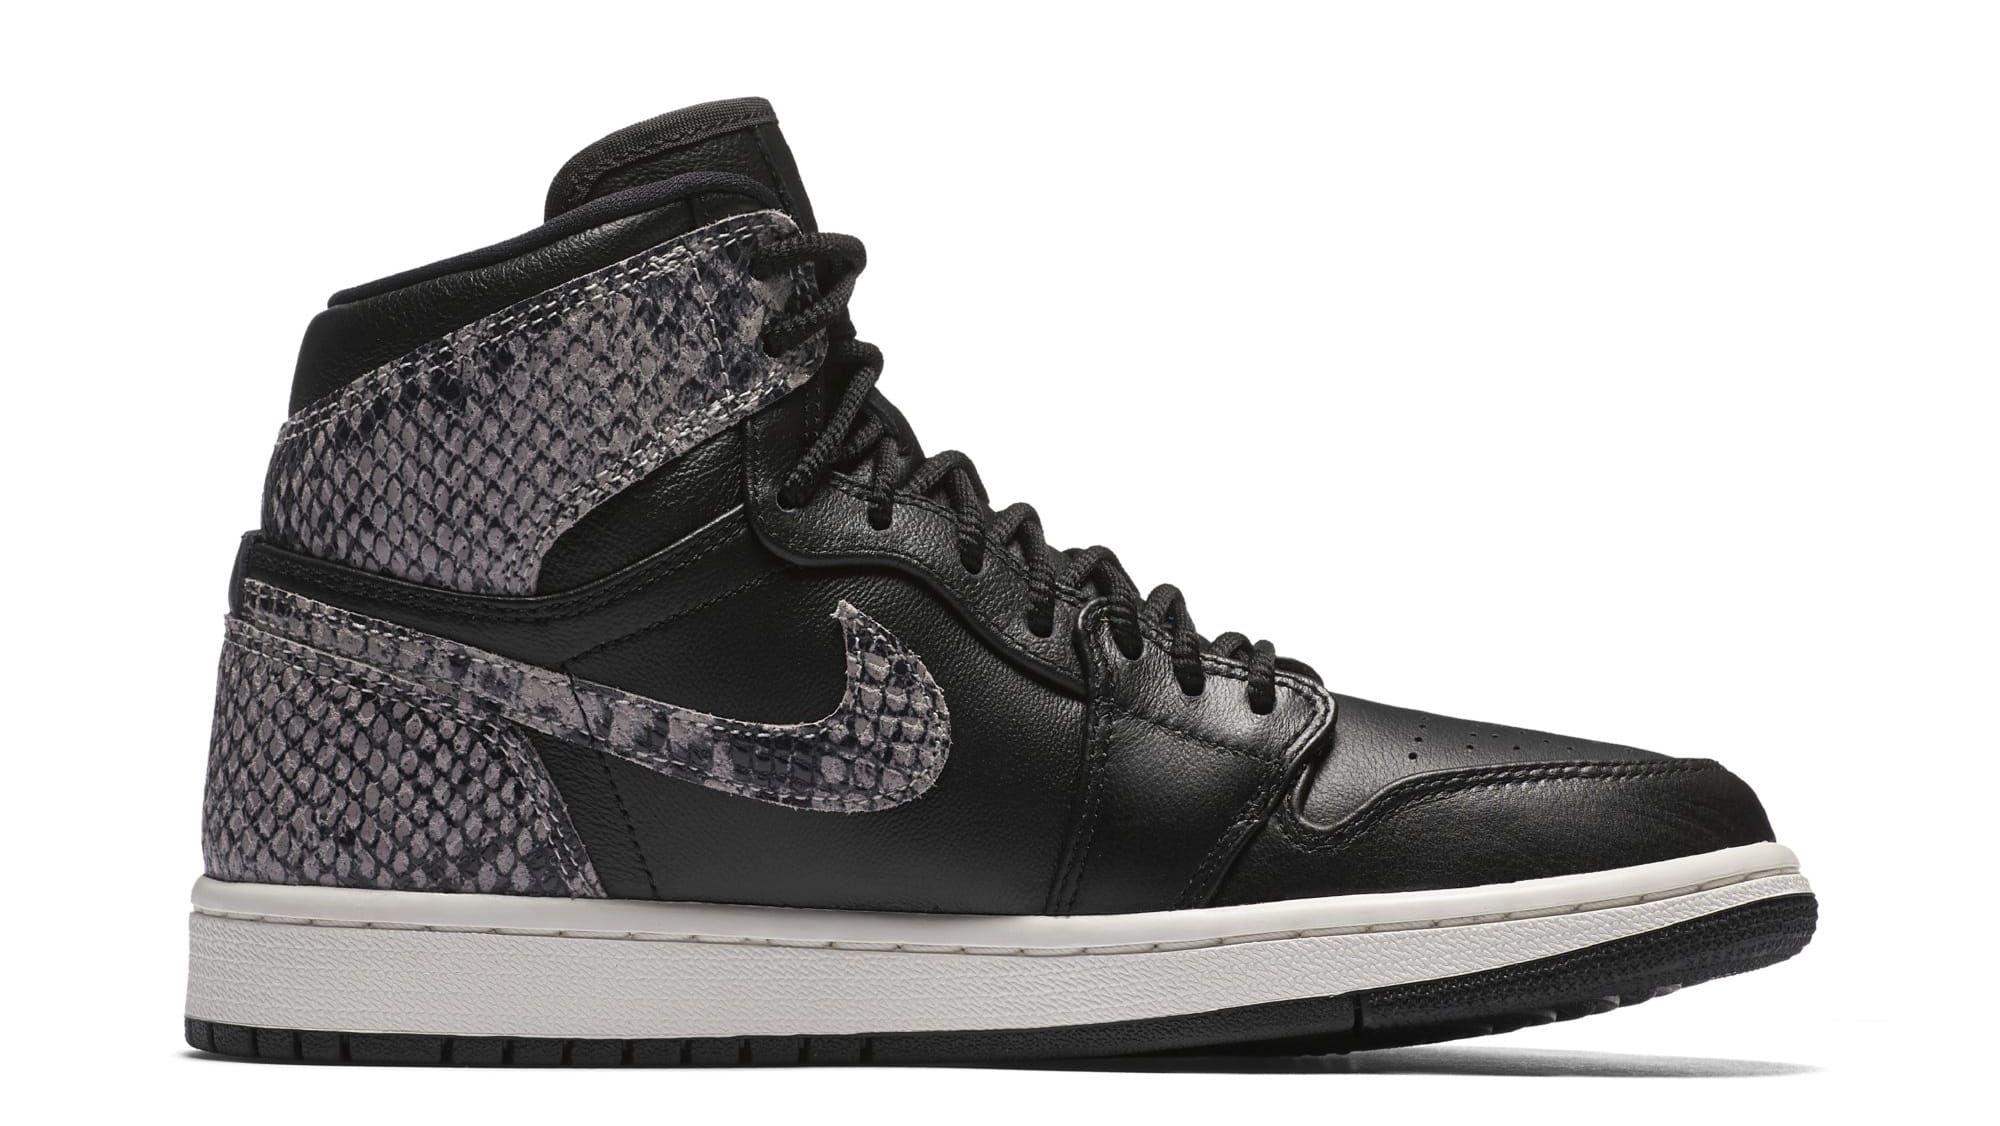 Air Jordan 1 Retro High Premium Women's Snake 'Black/Phantom' AH7389-014 (Medial)